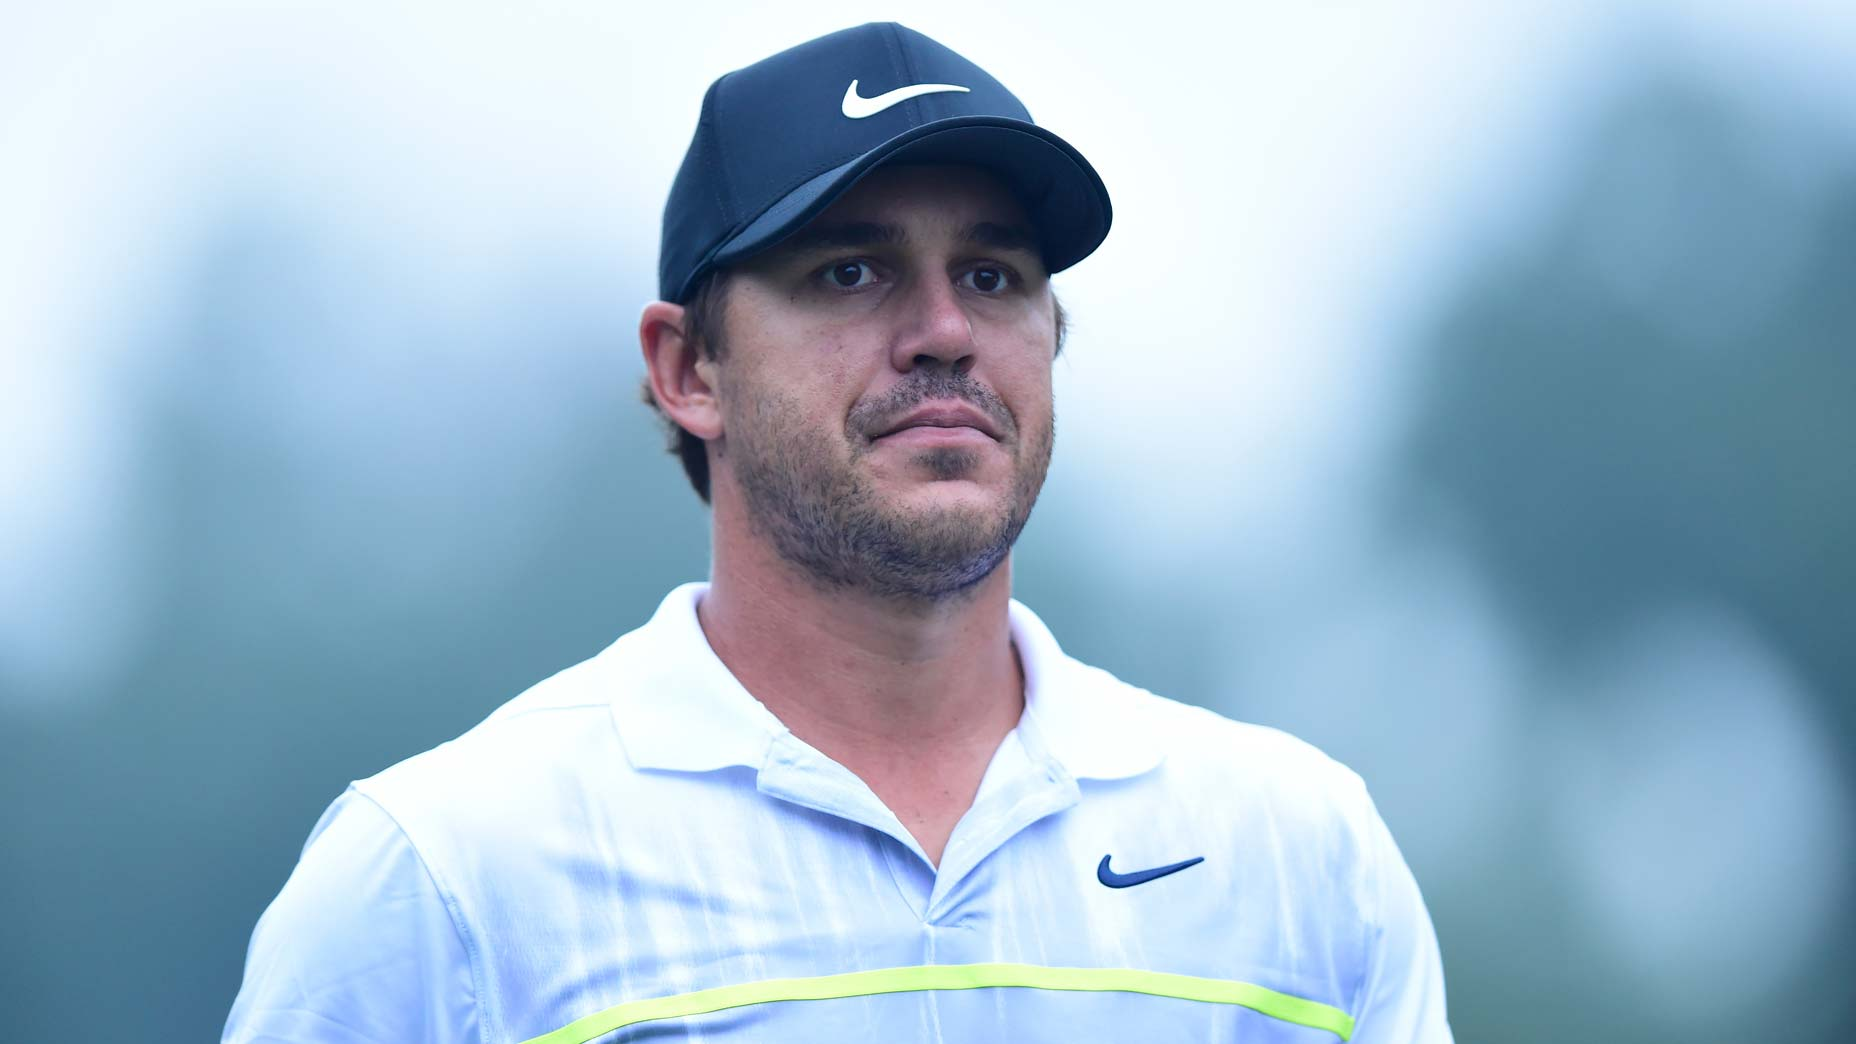 Brooks Koepka withdraws from U.S. Open citing health concerns